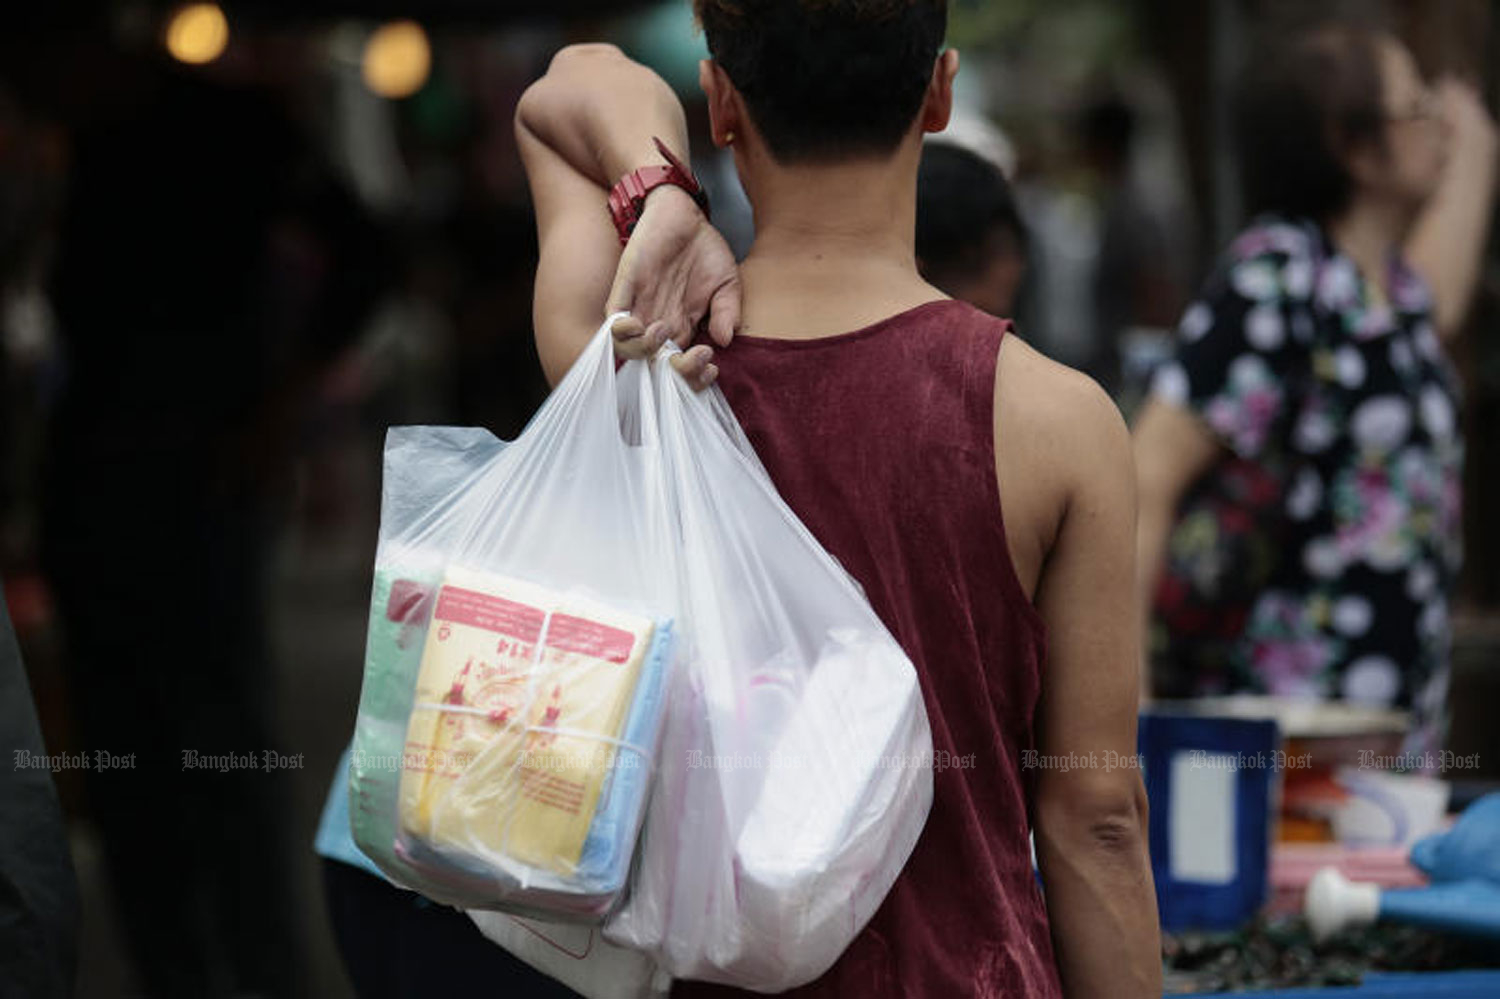 A shopper heads home with bagfuls of shopping. (Photo by Patipat Janthong)